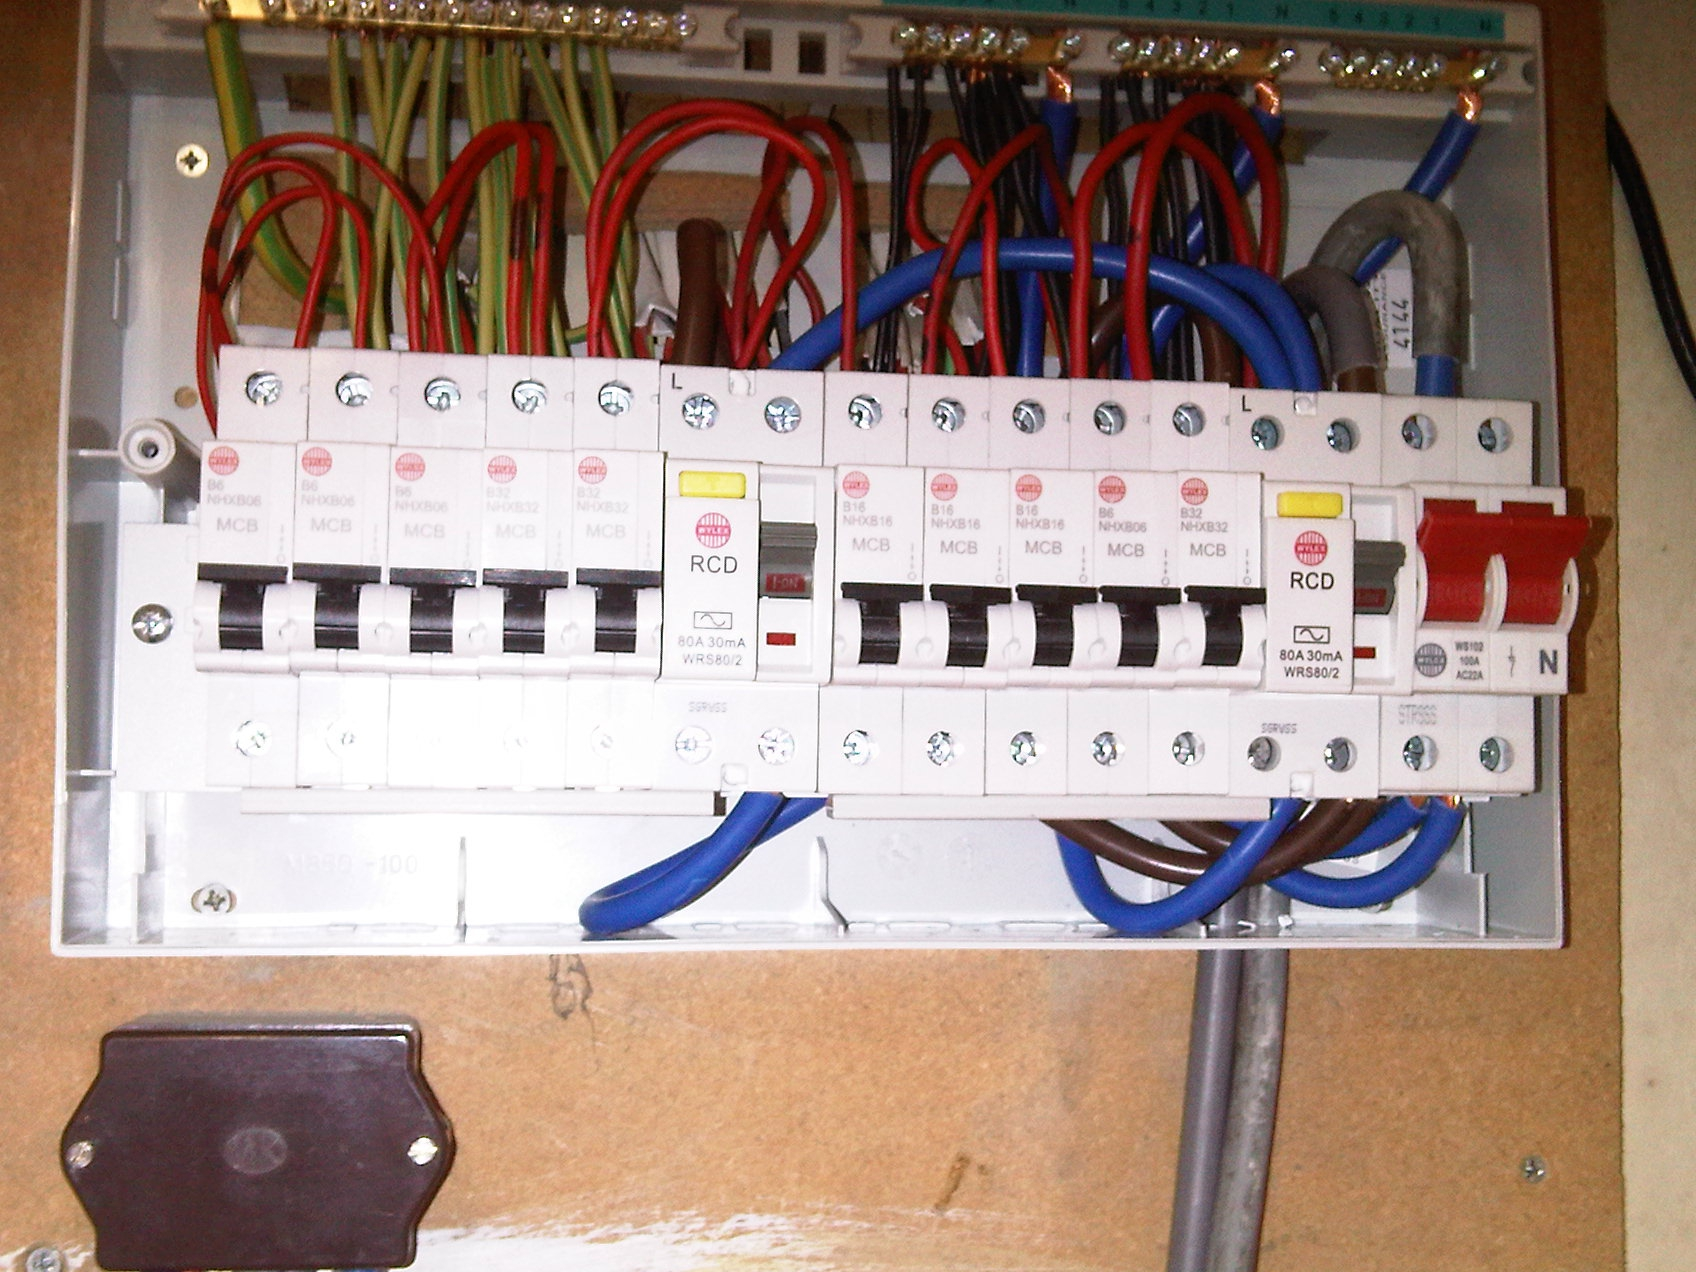 Fusebox 4 household fuse box residential fuse boxes \u2022 wiring diagrams j how to reset fuse box in house at mifinder.co